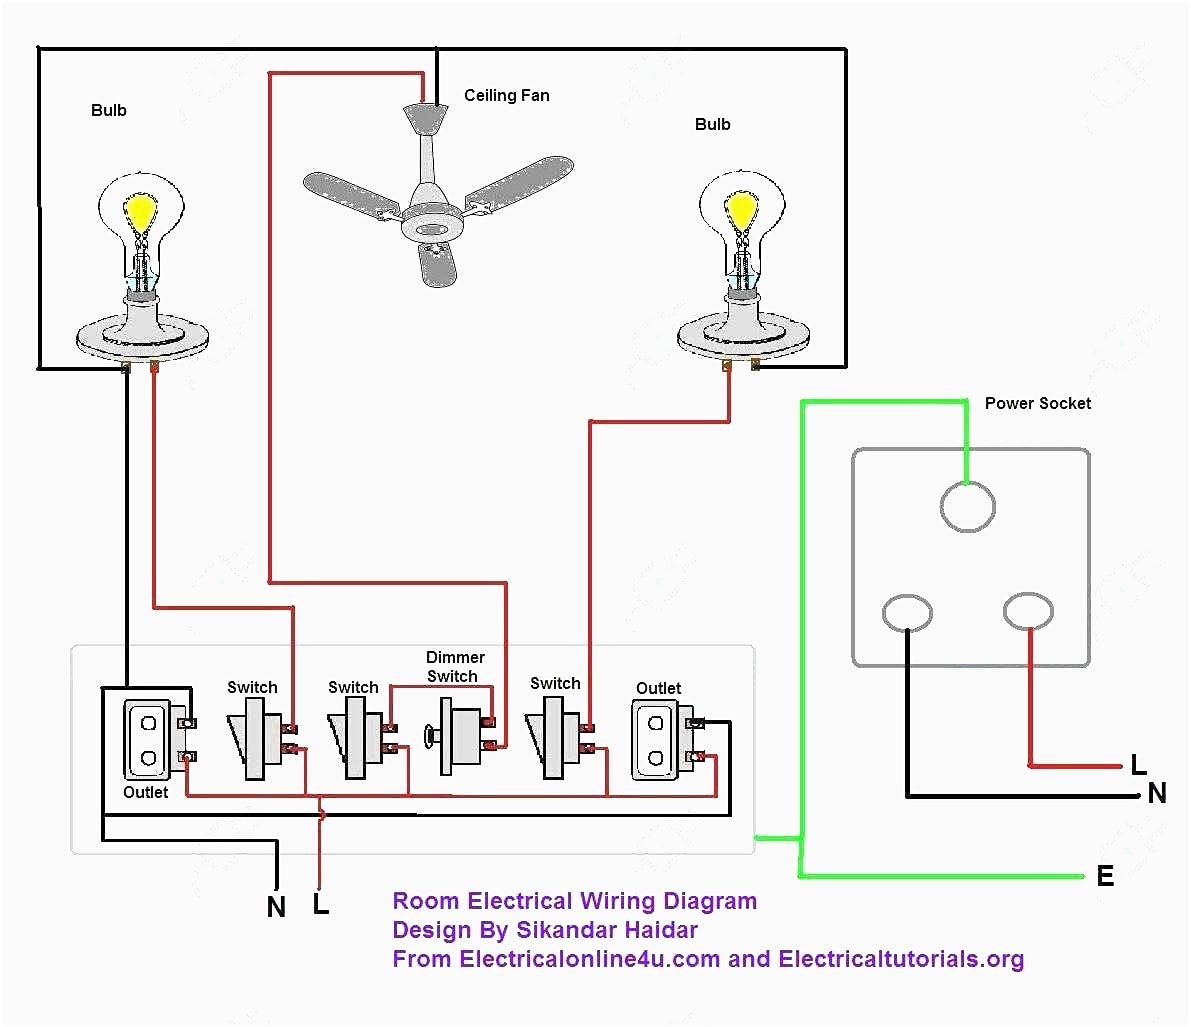 Building Wiring Diagram | #1 Wiring Diagram Source on